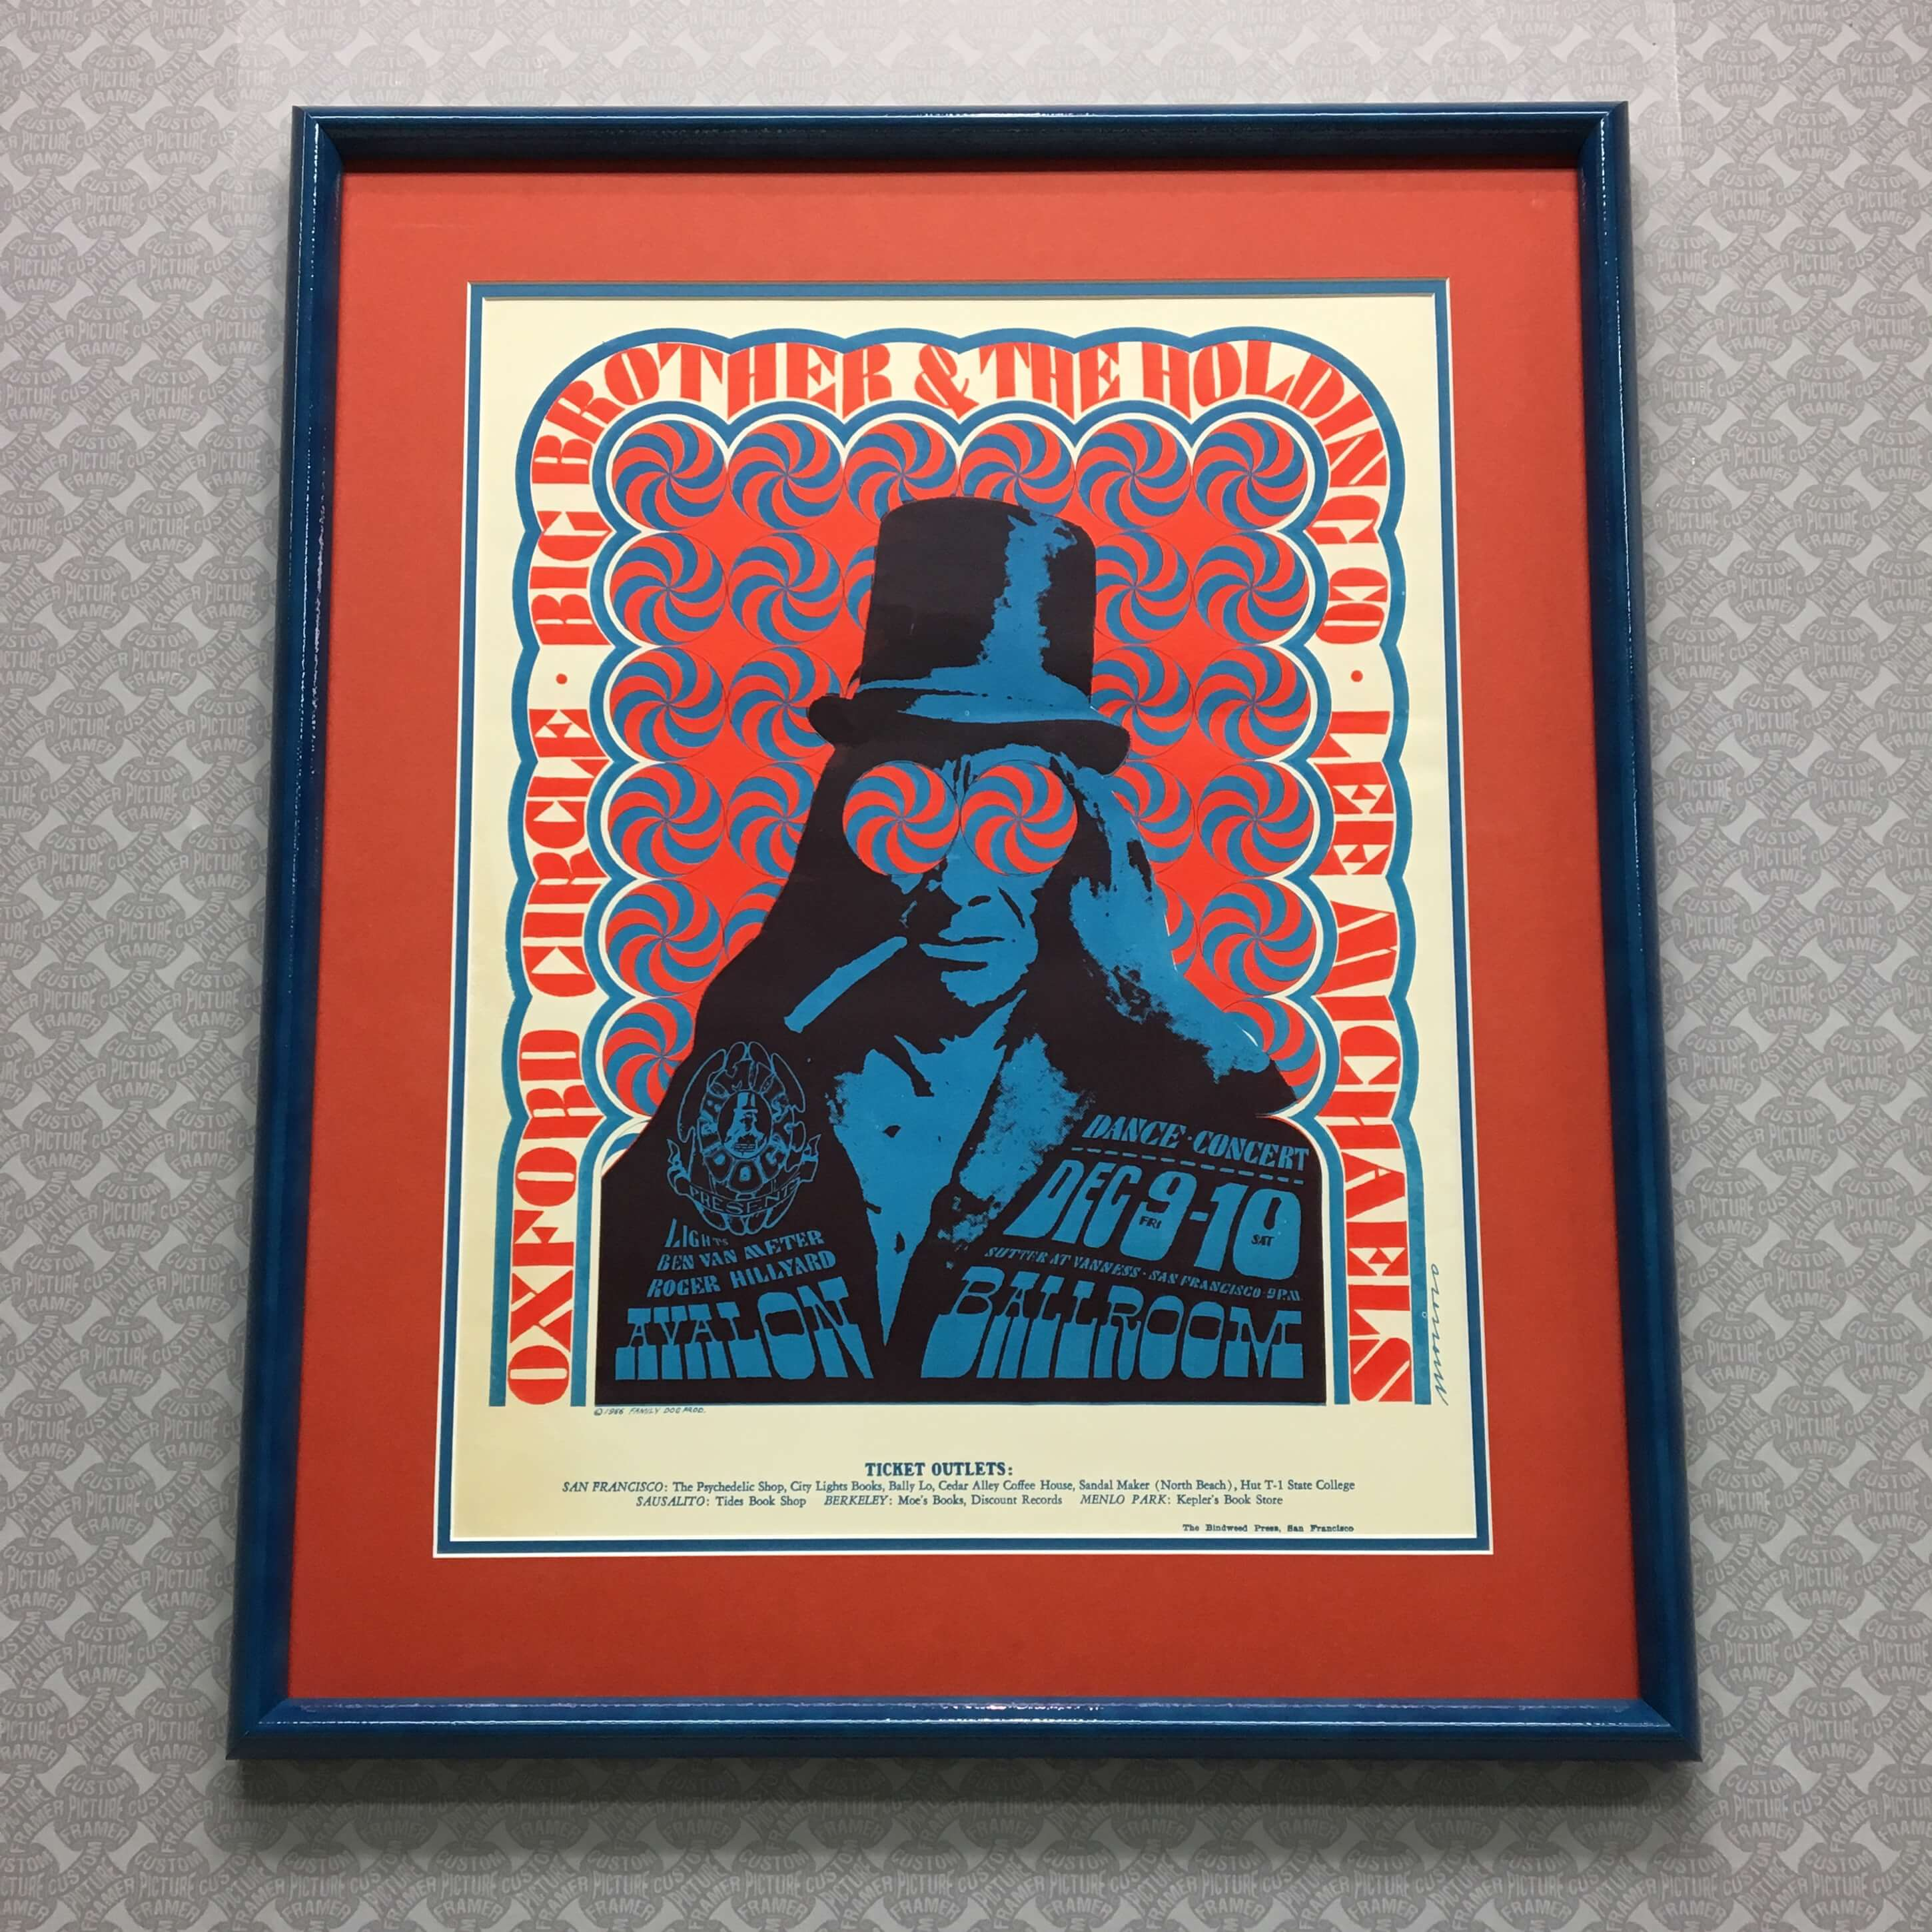 1966 Avalon Ballroom concert poster - double matted and custom framed in candy apple blue. See more custom framing options at our Keswick Village showroom just north of Philadelphia in Glenside PA ( Pennsylvania ) , 19038 . Custom Picture Framer of Glenside carries several thousand frame styles, prints, maps, limited editions, mirrors, and more!